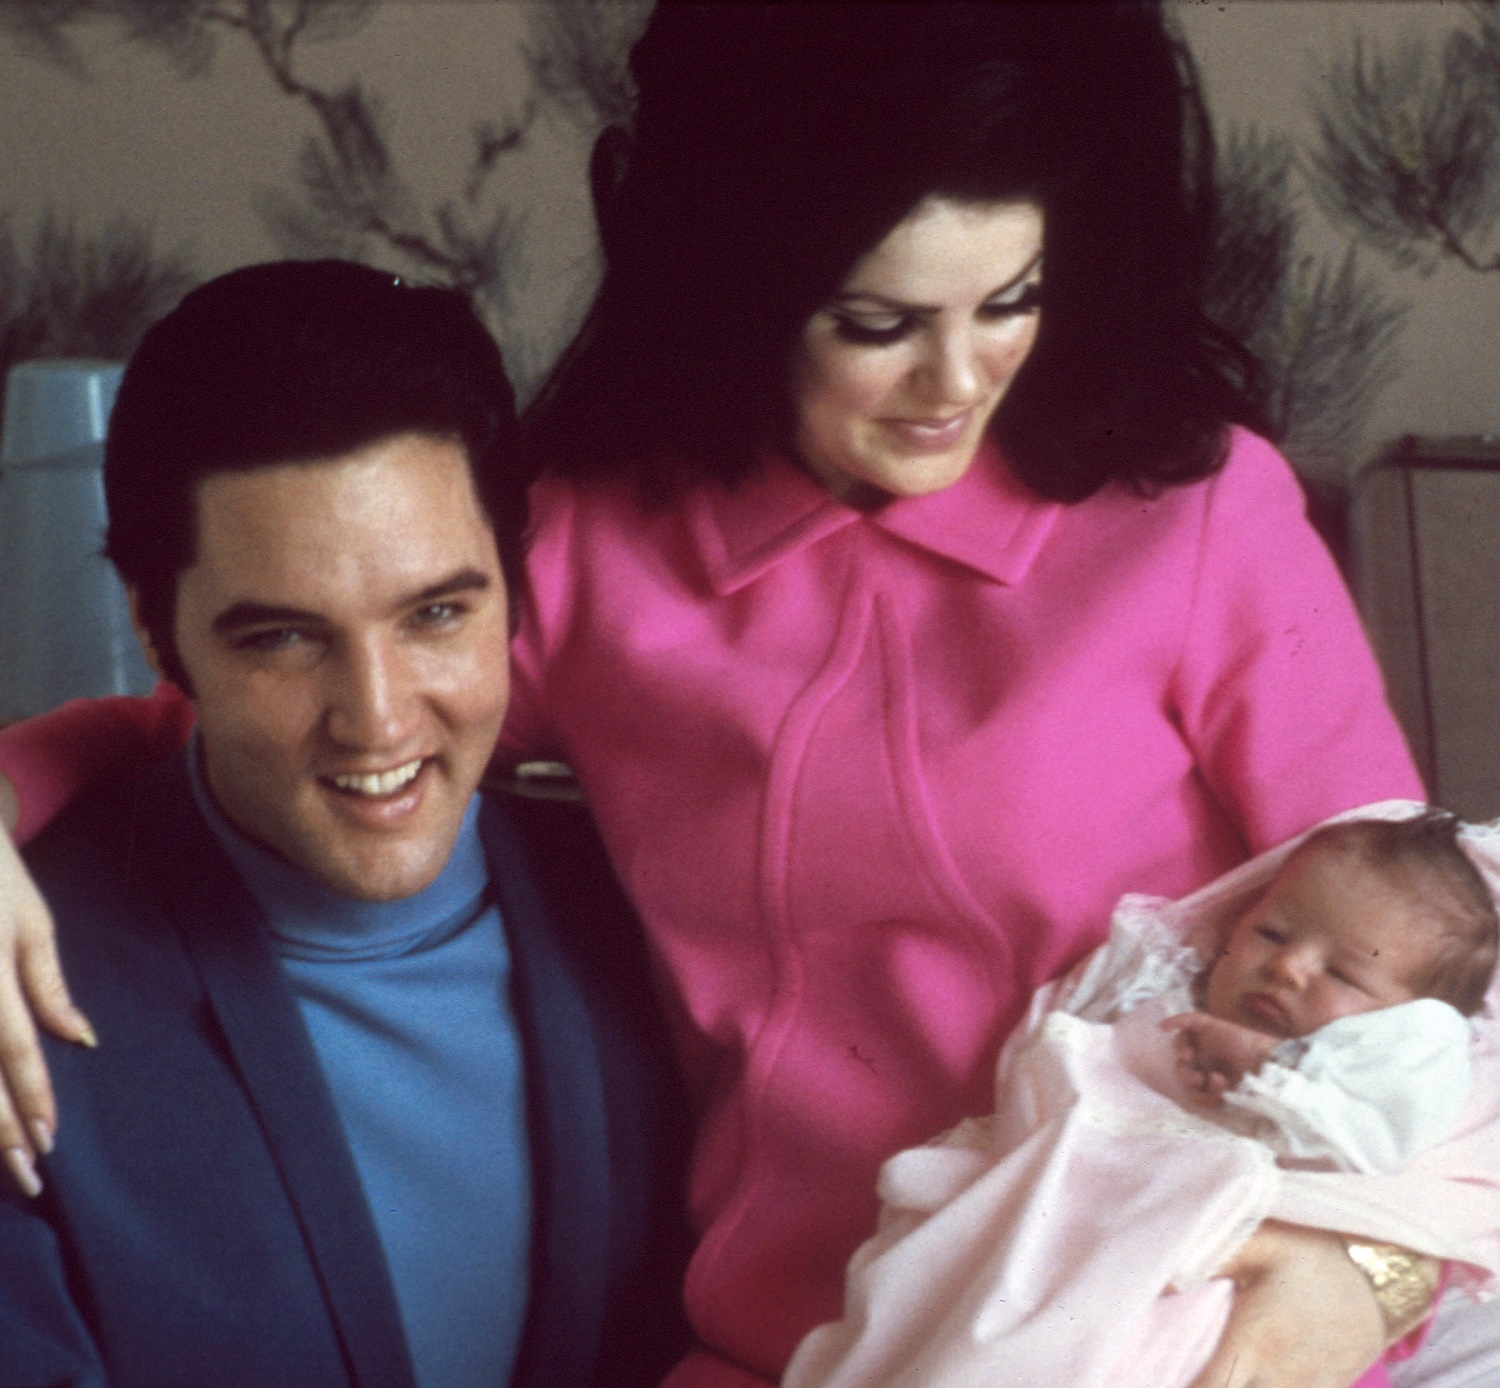 Elvis Presley with his wife Priscilla Beaulieu Presley and their 4 day old daughter Lisa Marie Presley